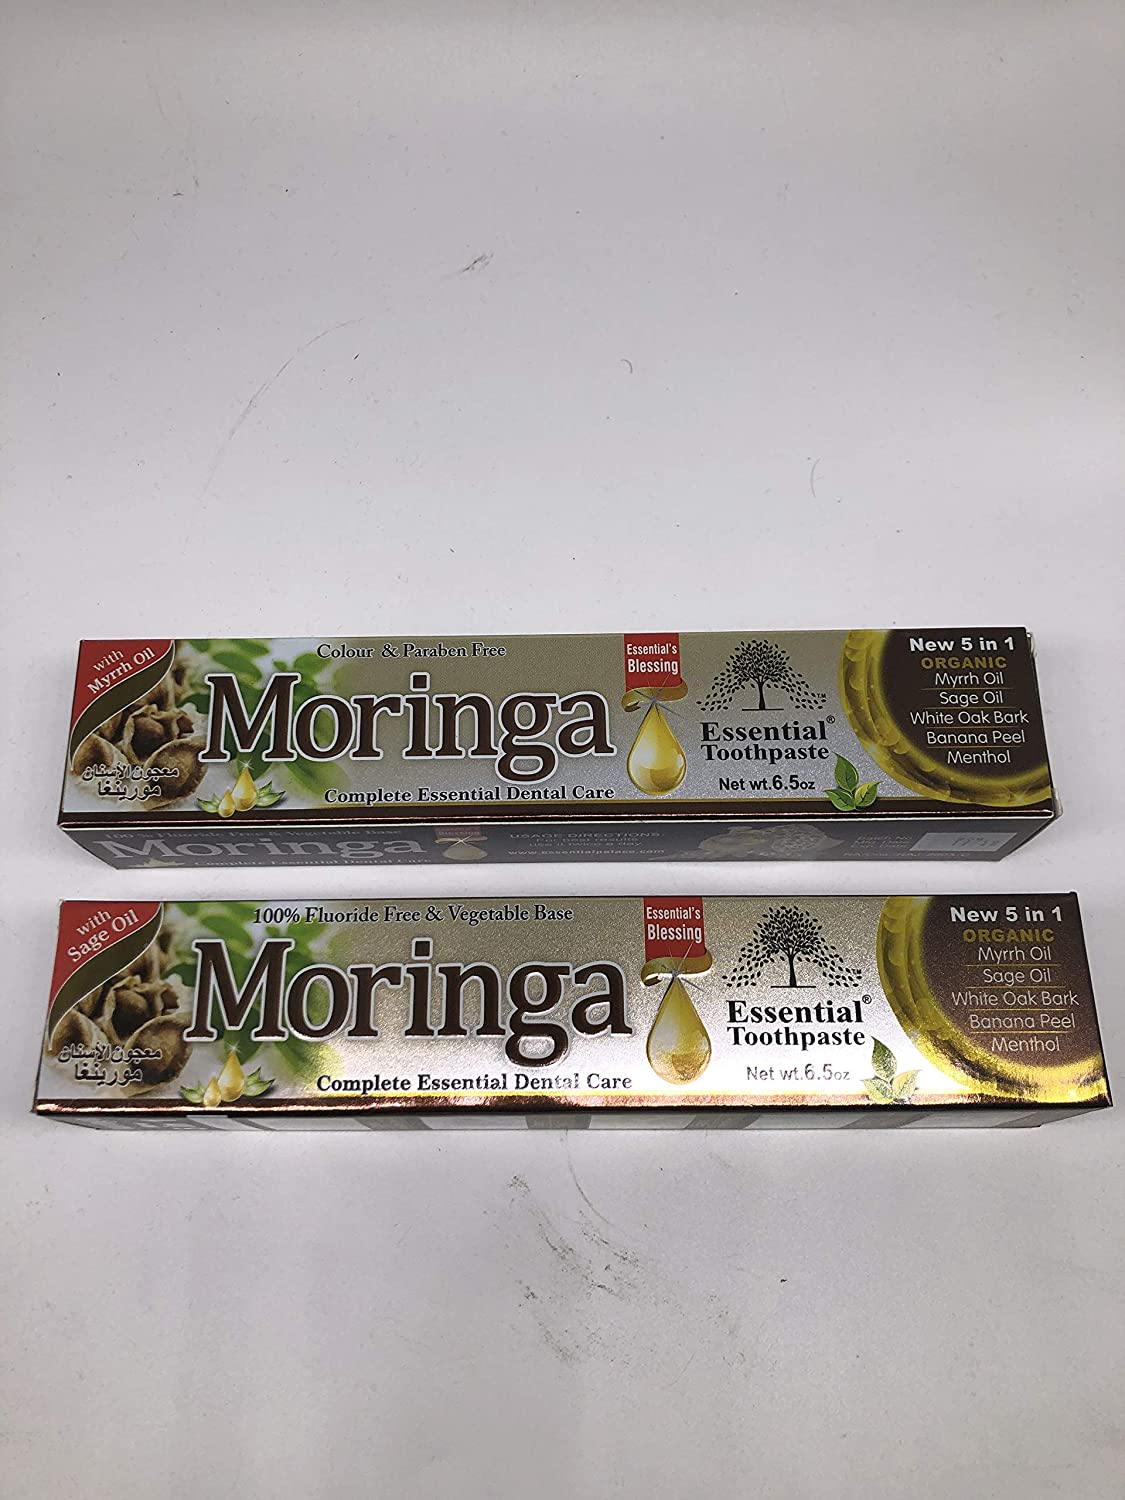 Moringa Organic Toothpaste 100% Fluoride C Max 73% OFF Base Vegetable Recommendation Free